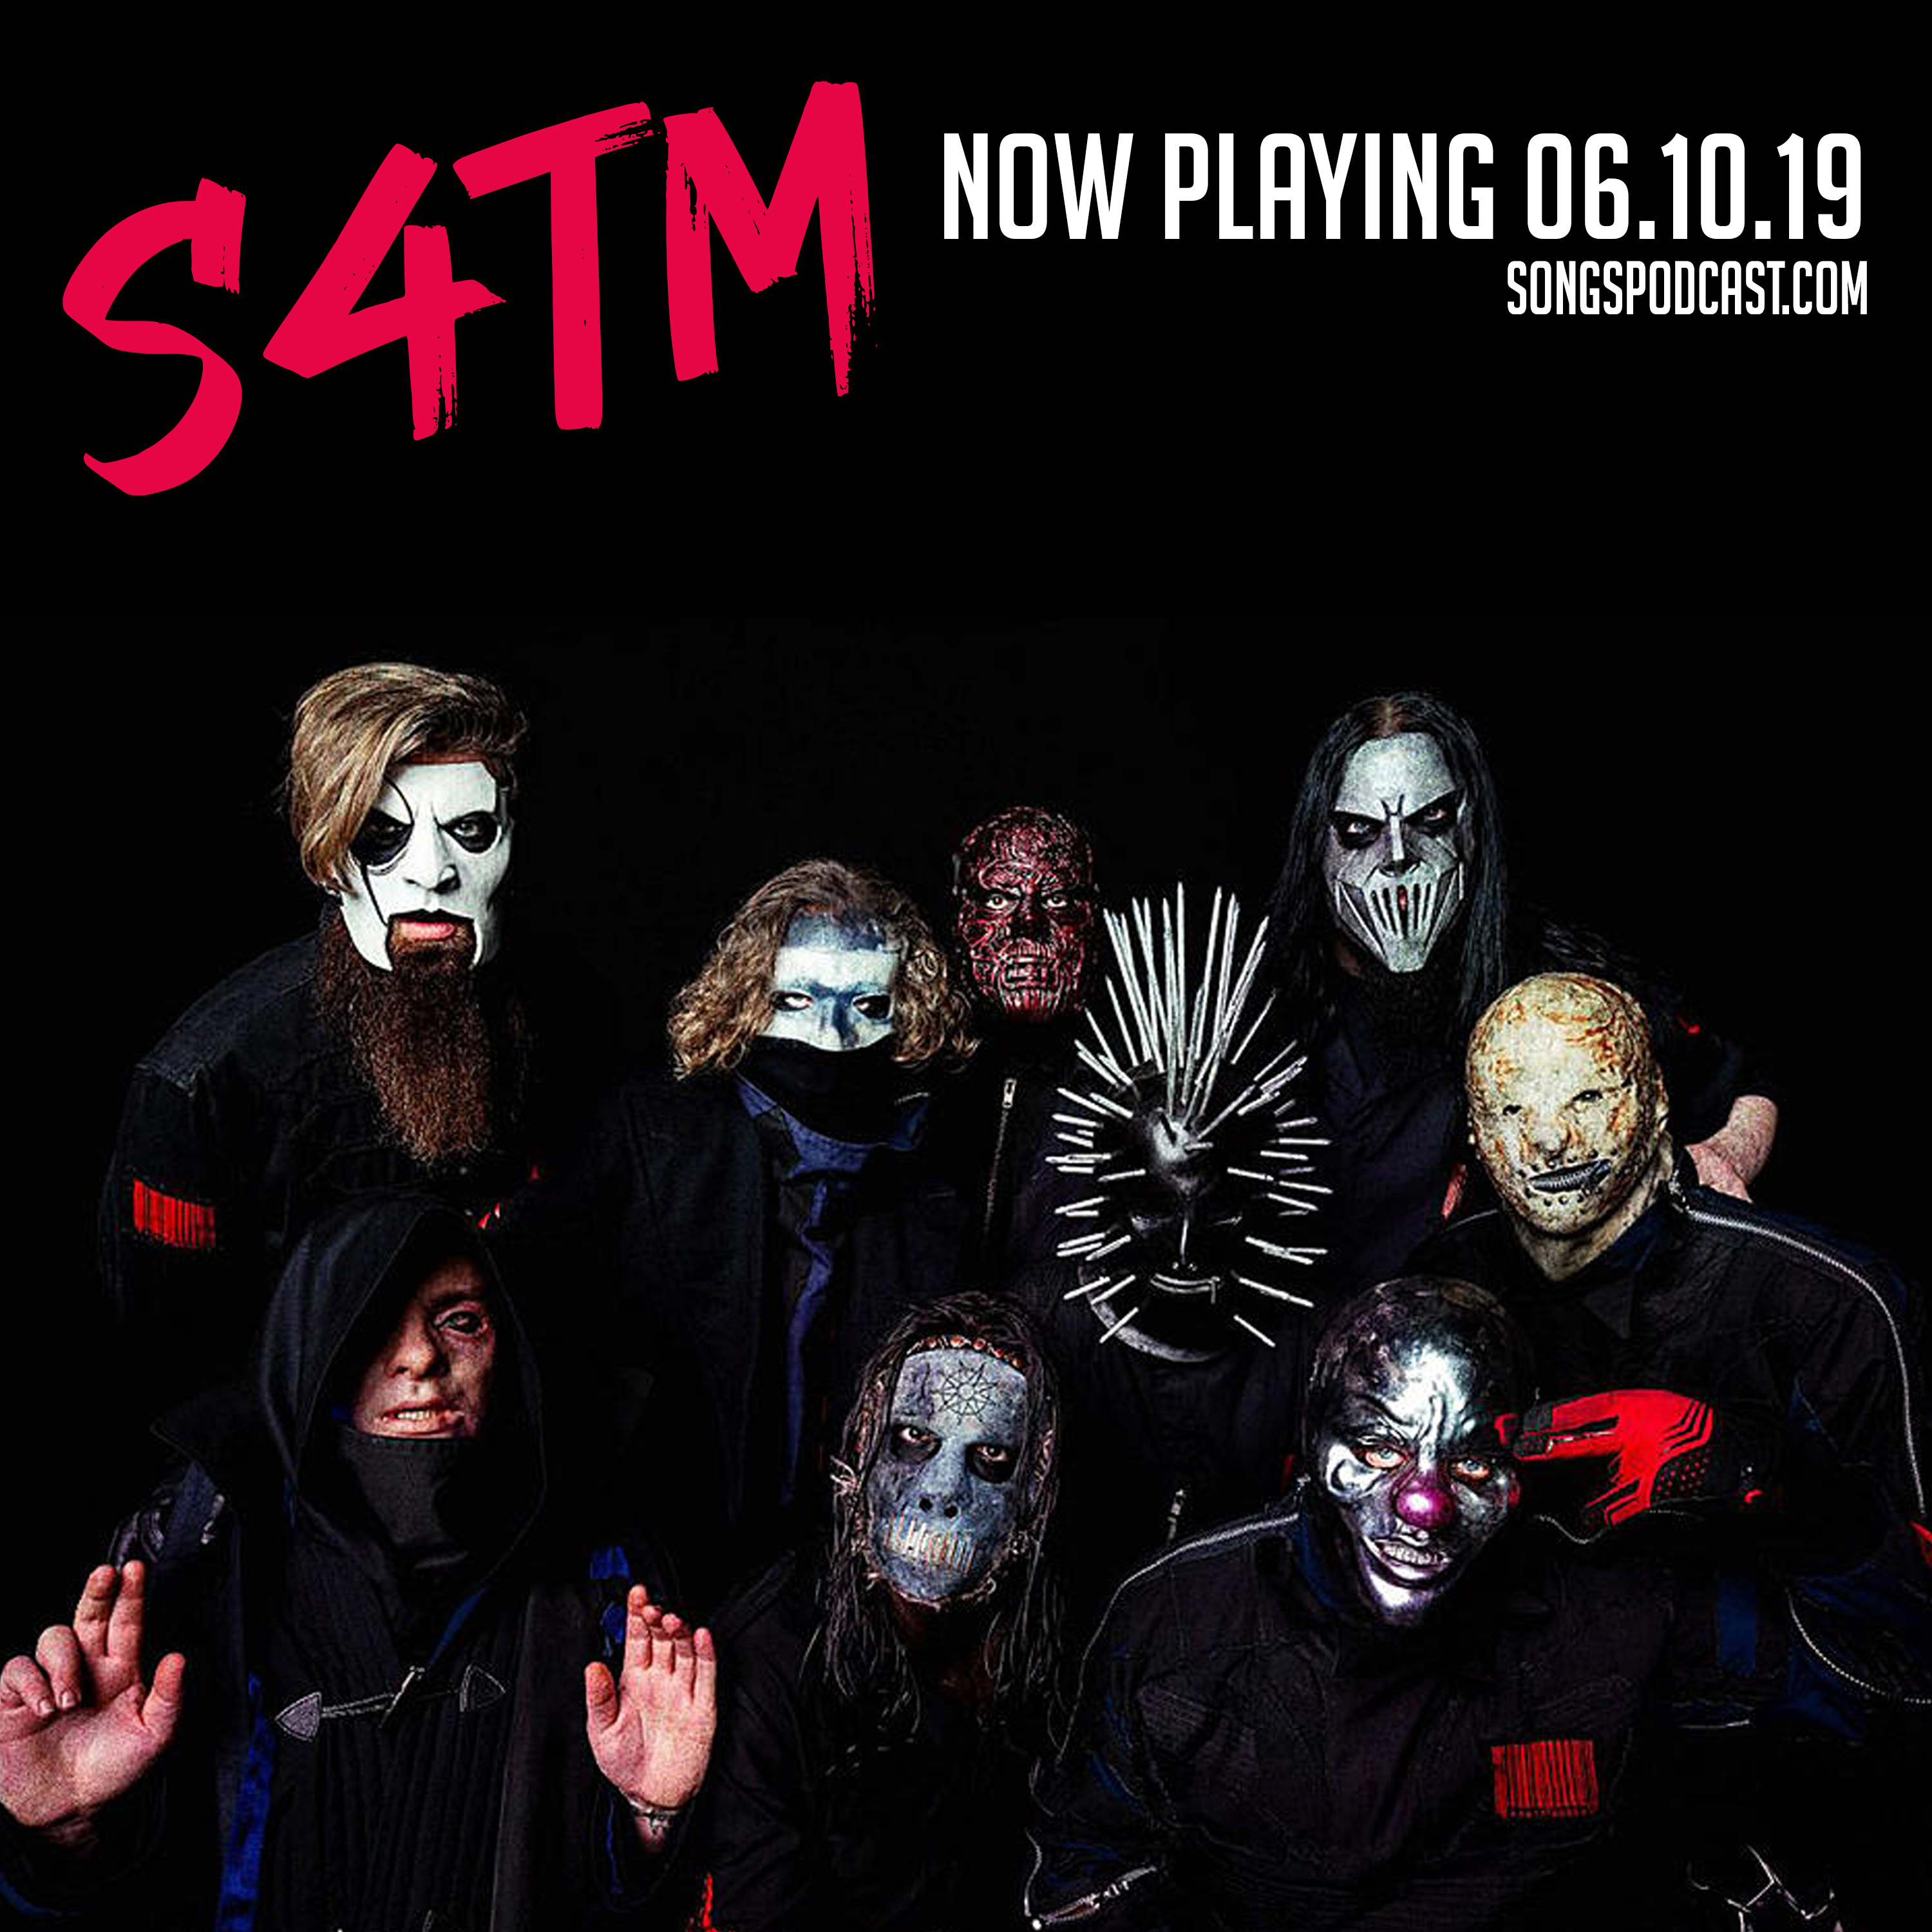 Now Playing, and Live S4TM?!